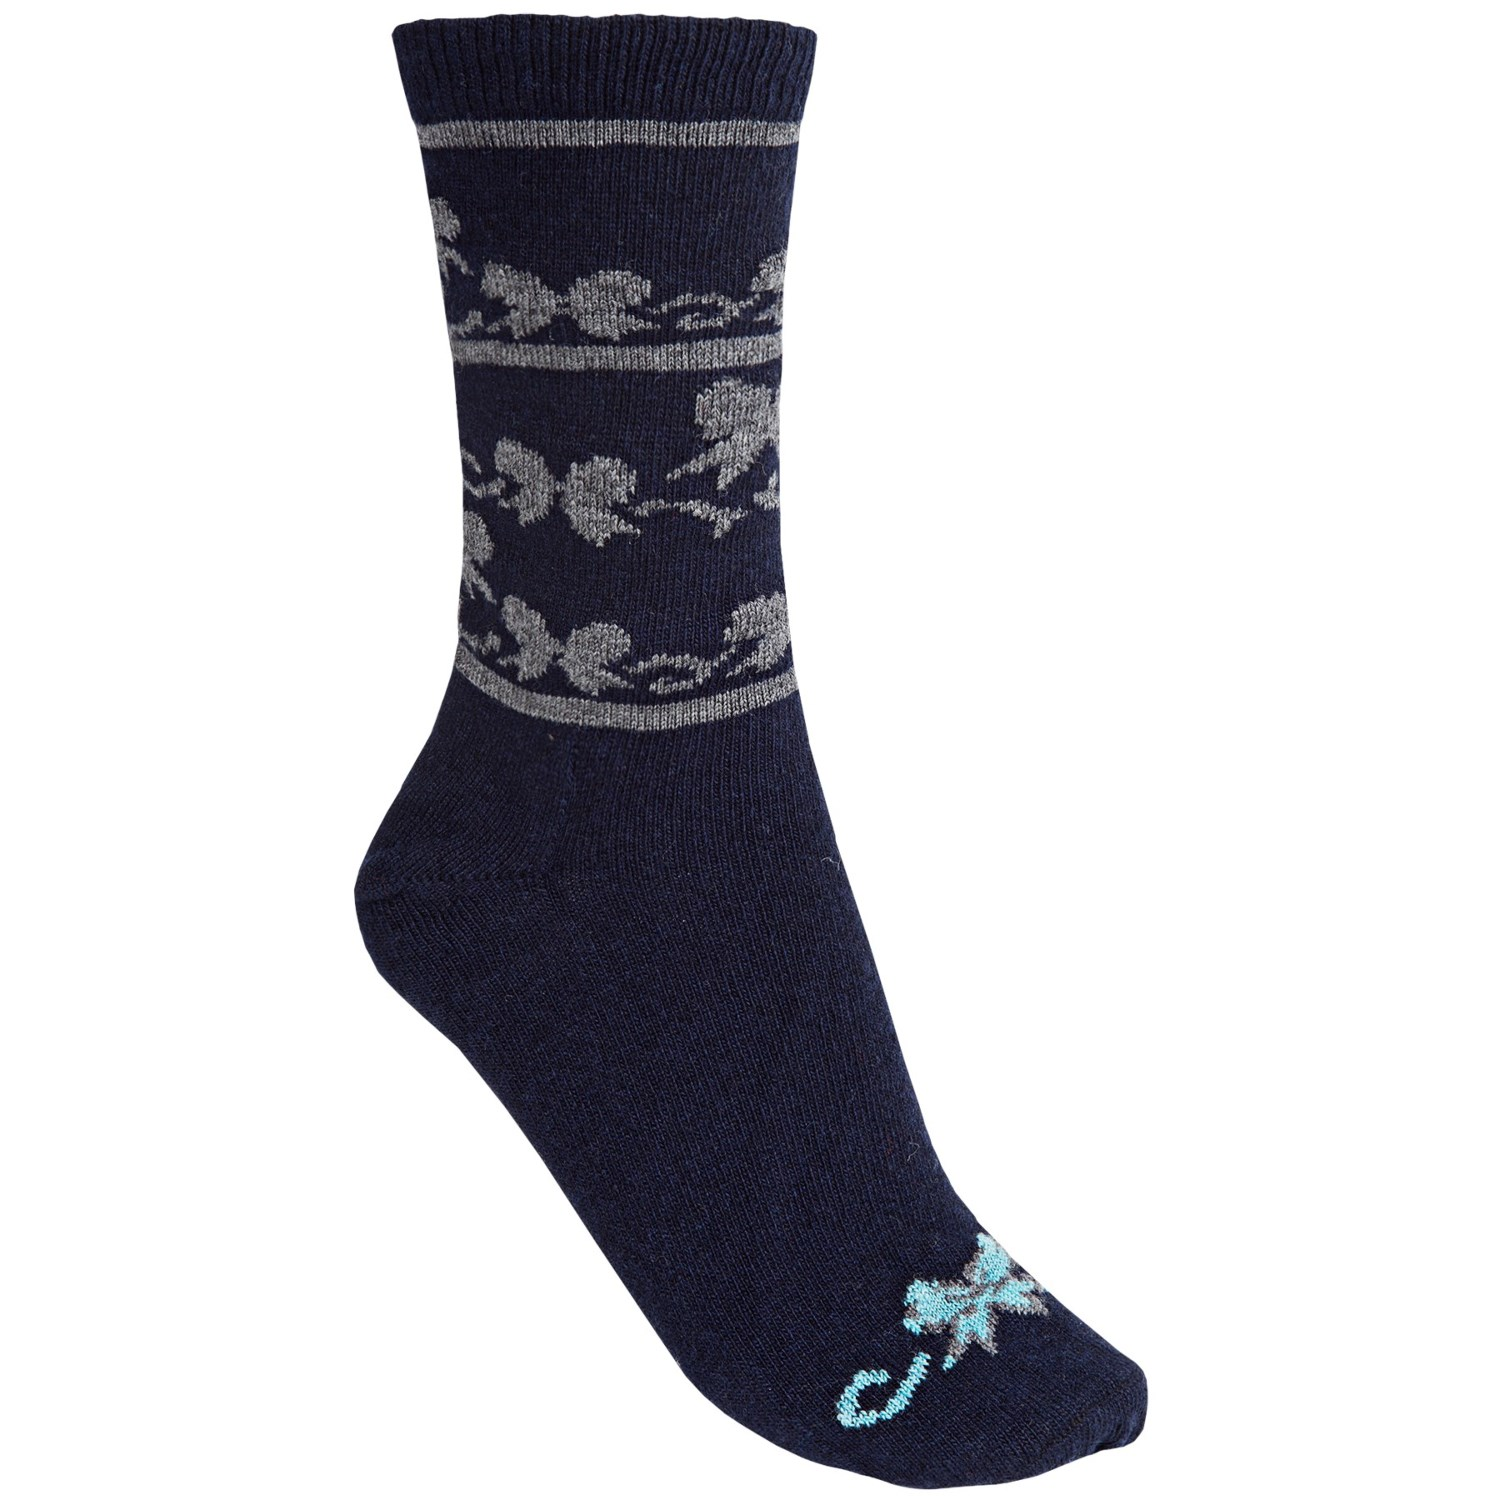 Shop eBay for great deals on Women's Cashmere Blend Socks. You'll find new or used products in Women's Cashmere Blend Socks on eBay. Free shipping on selected items.